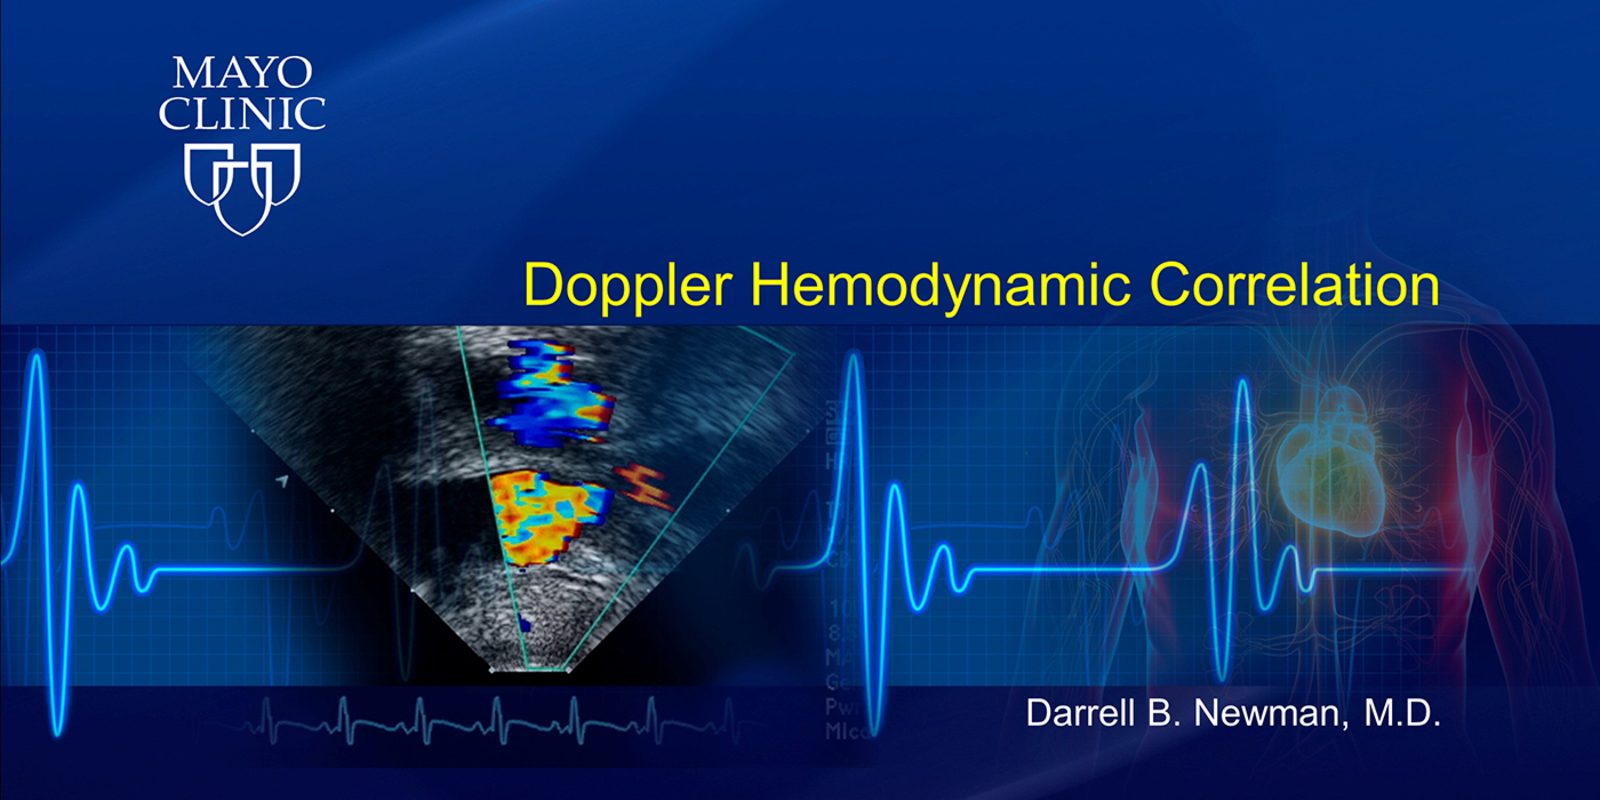 Doppler Hemodynamic Correlation